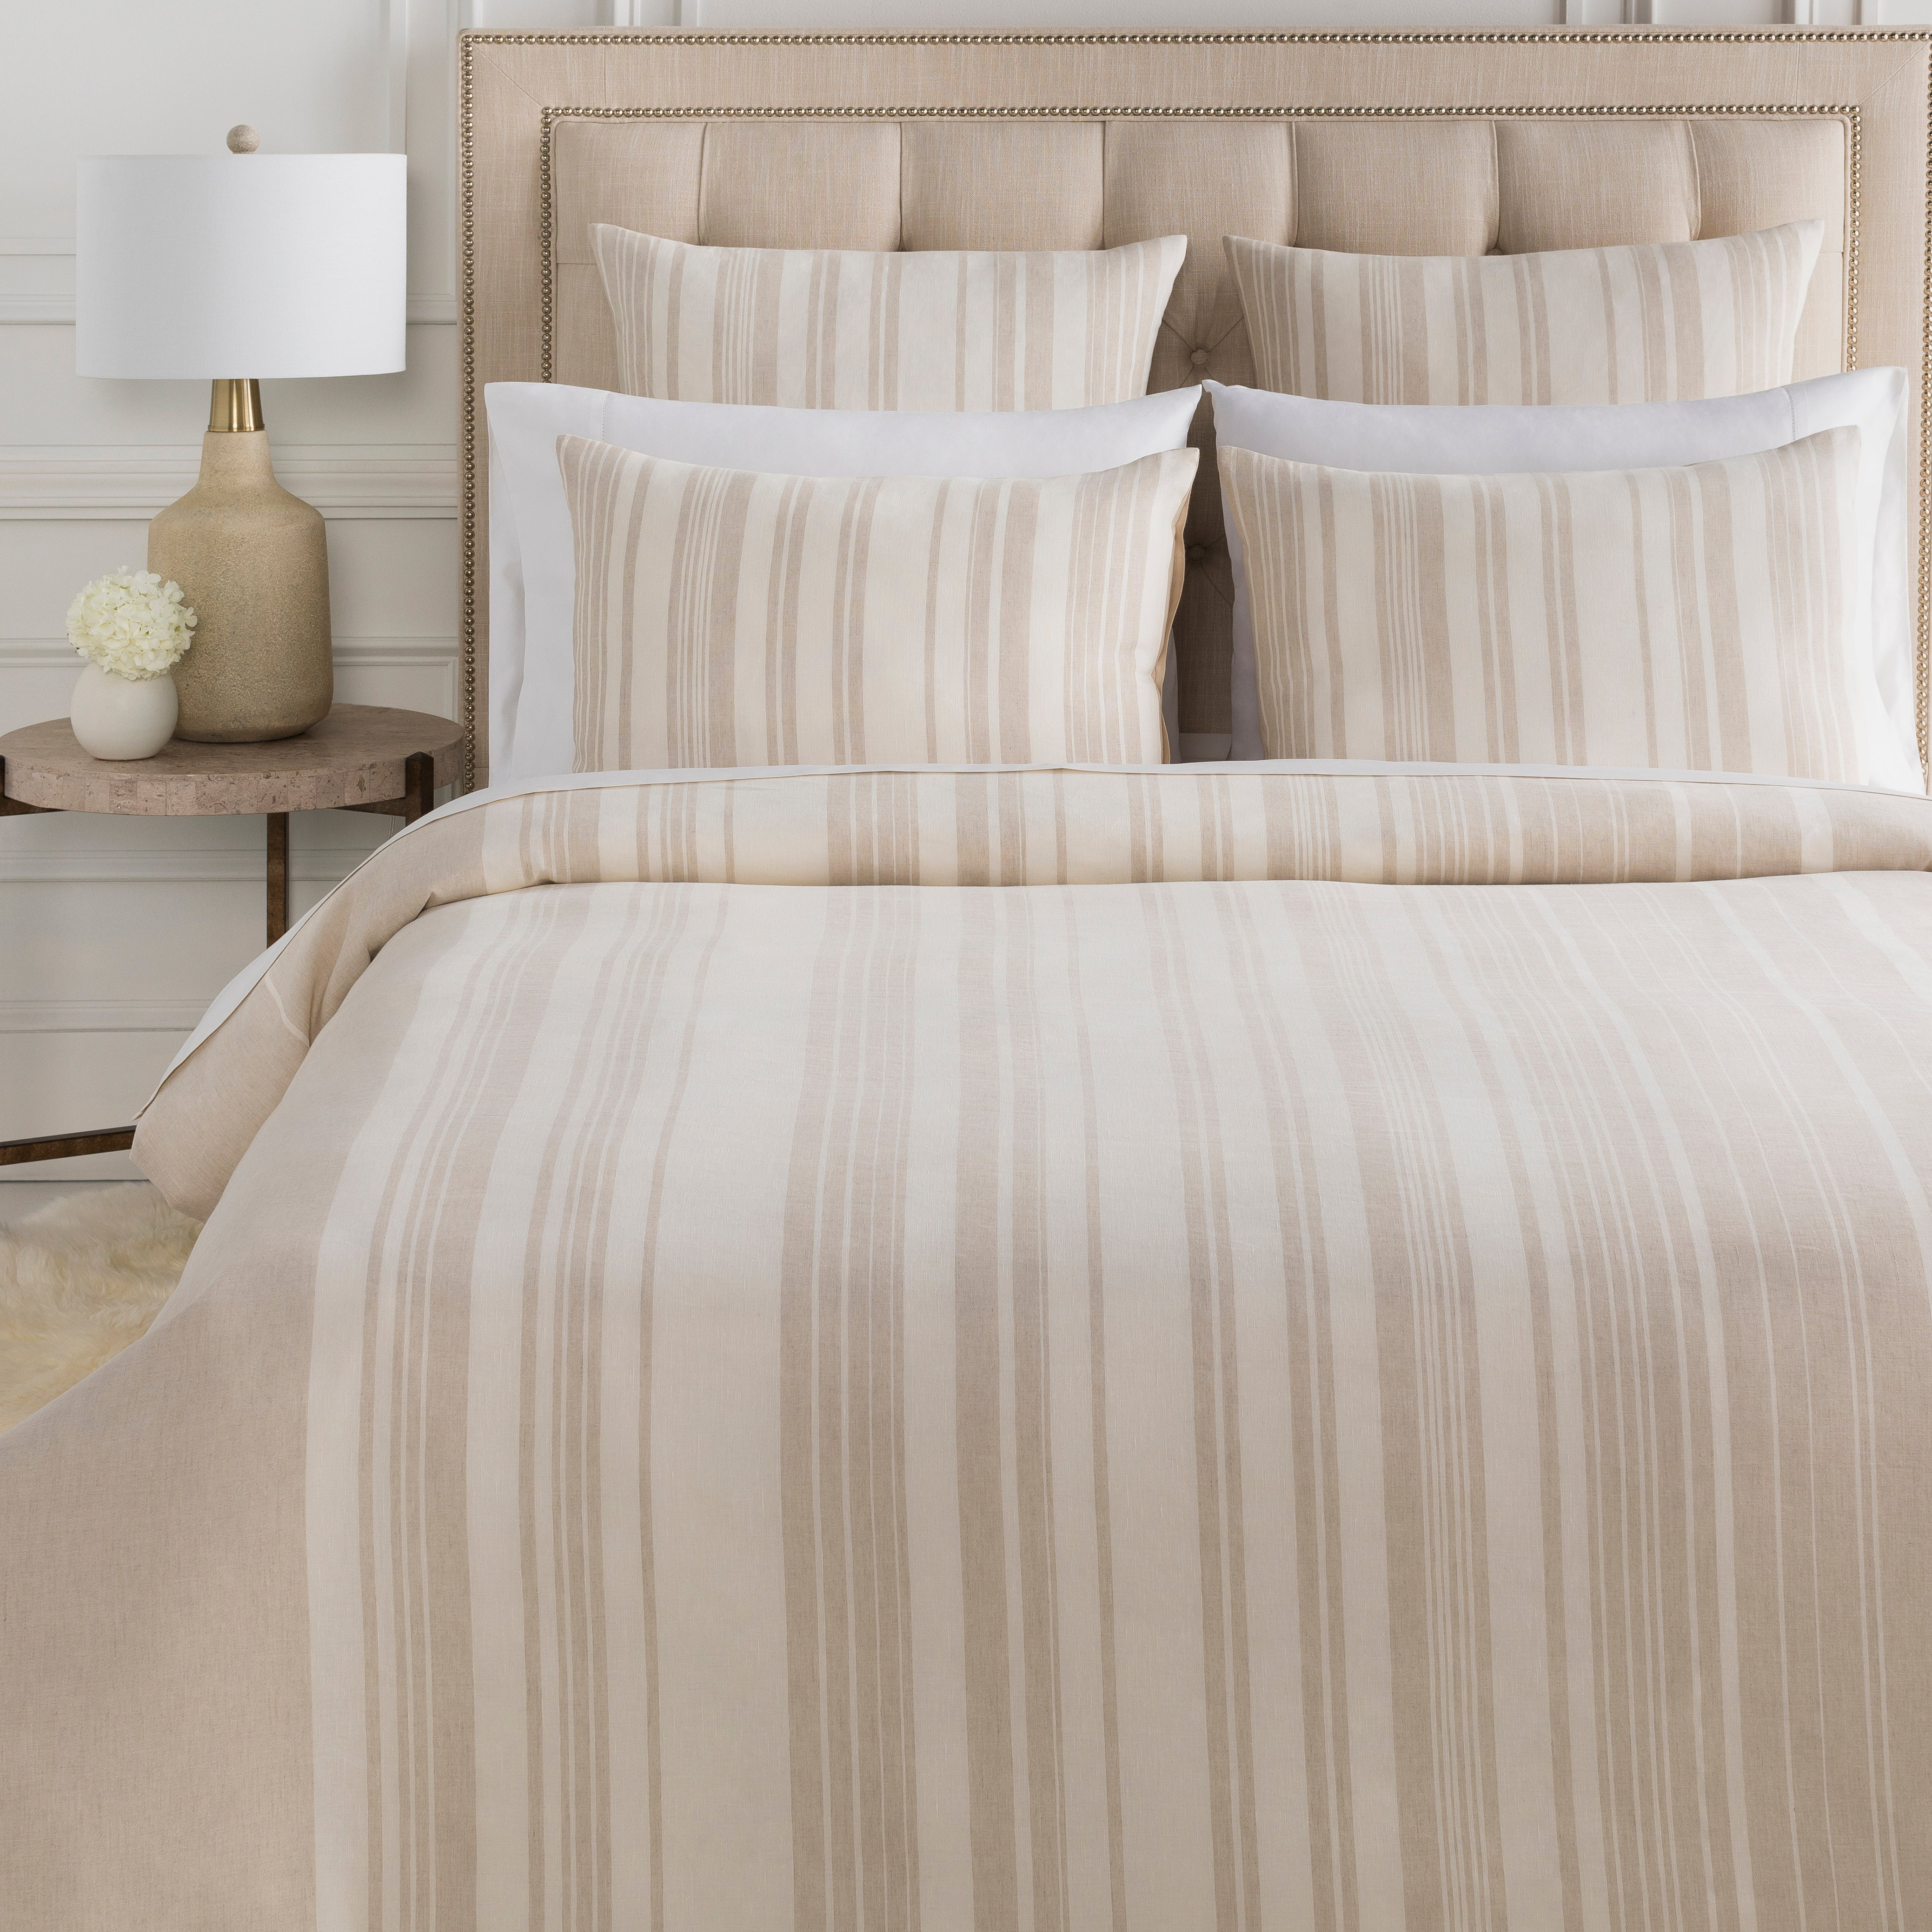 Baris Bedding in Taupe & Ivory